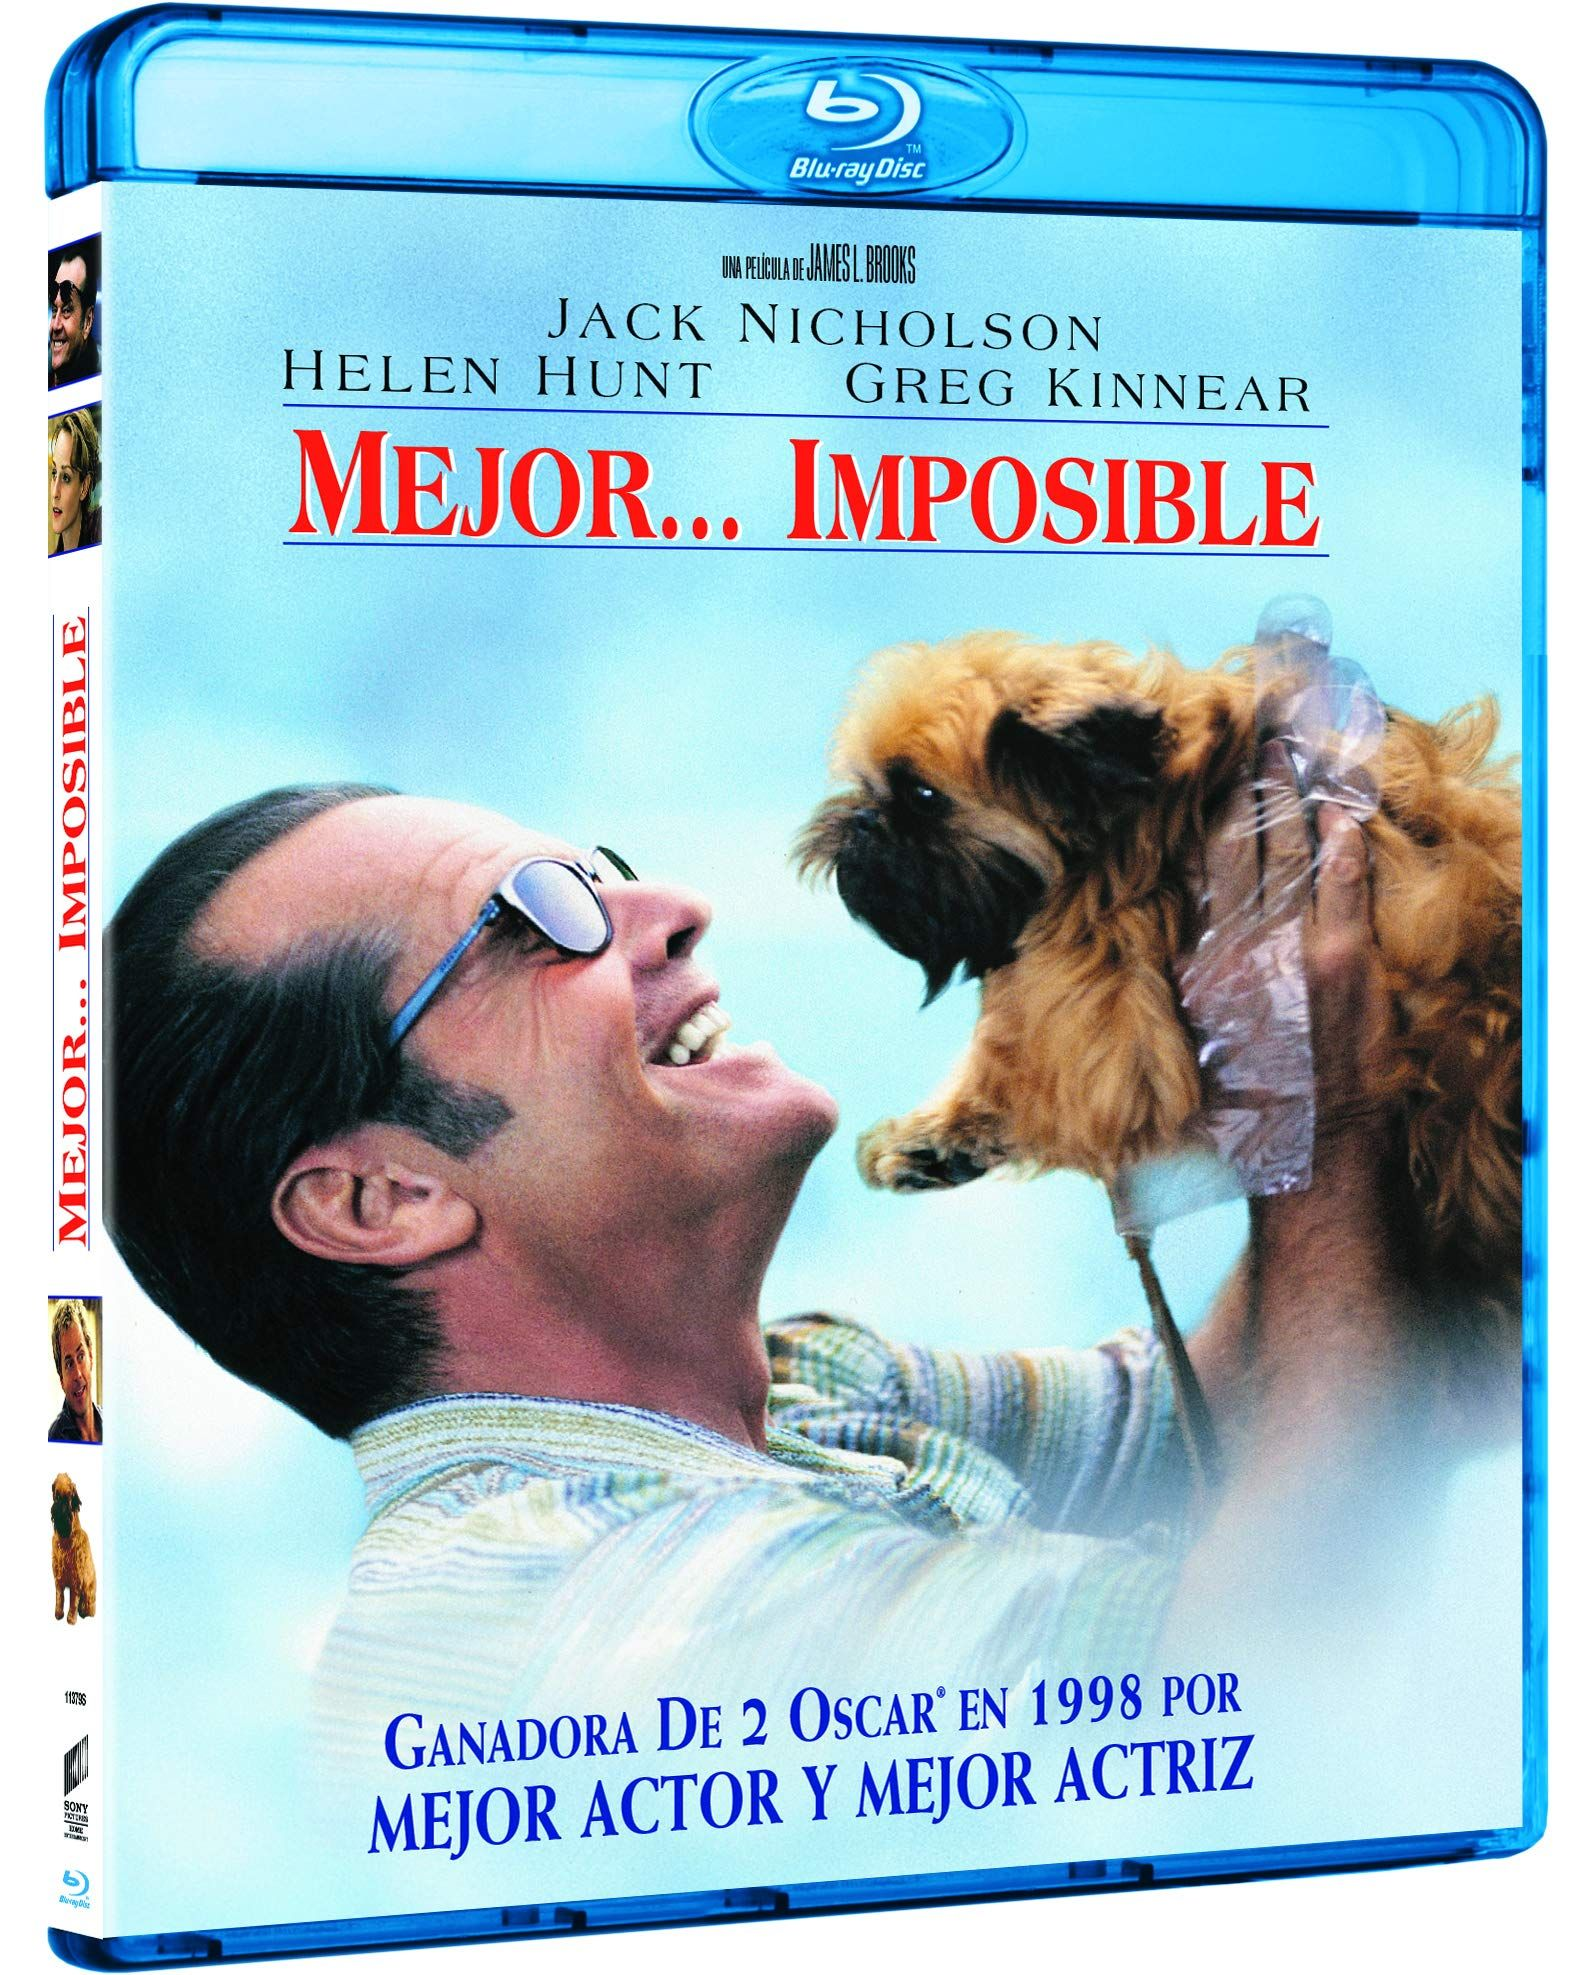 Mejor Imposible 2019 Bd Blu Ray Imposible Mejor Ray Blu Pelicula Mejor Imposible Peliculas Mejores Peliculas